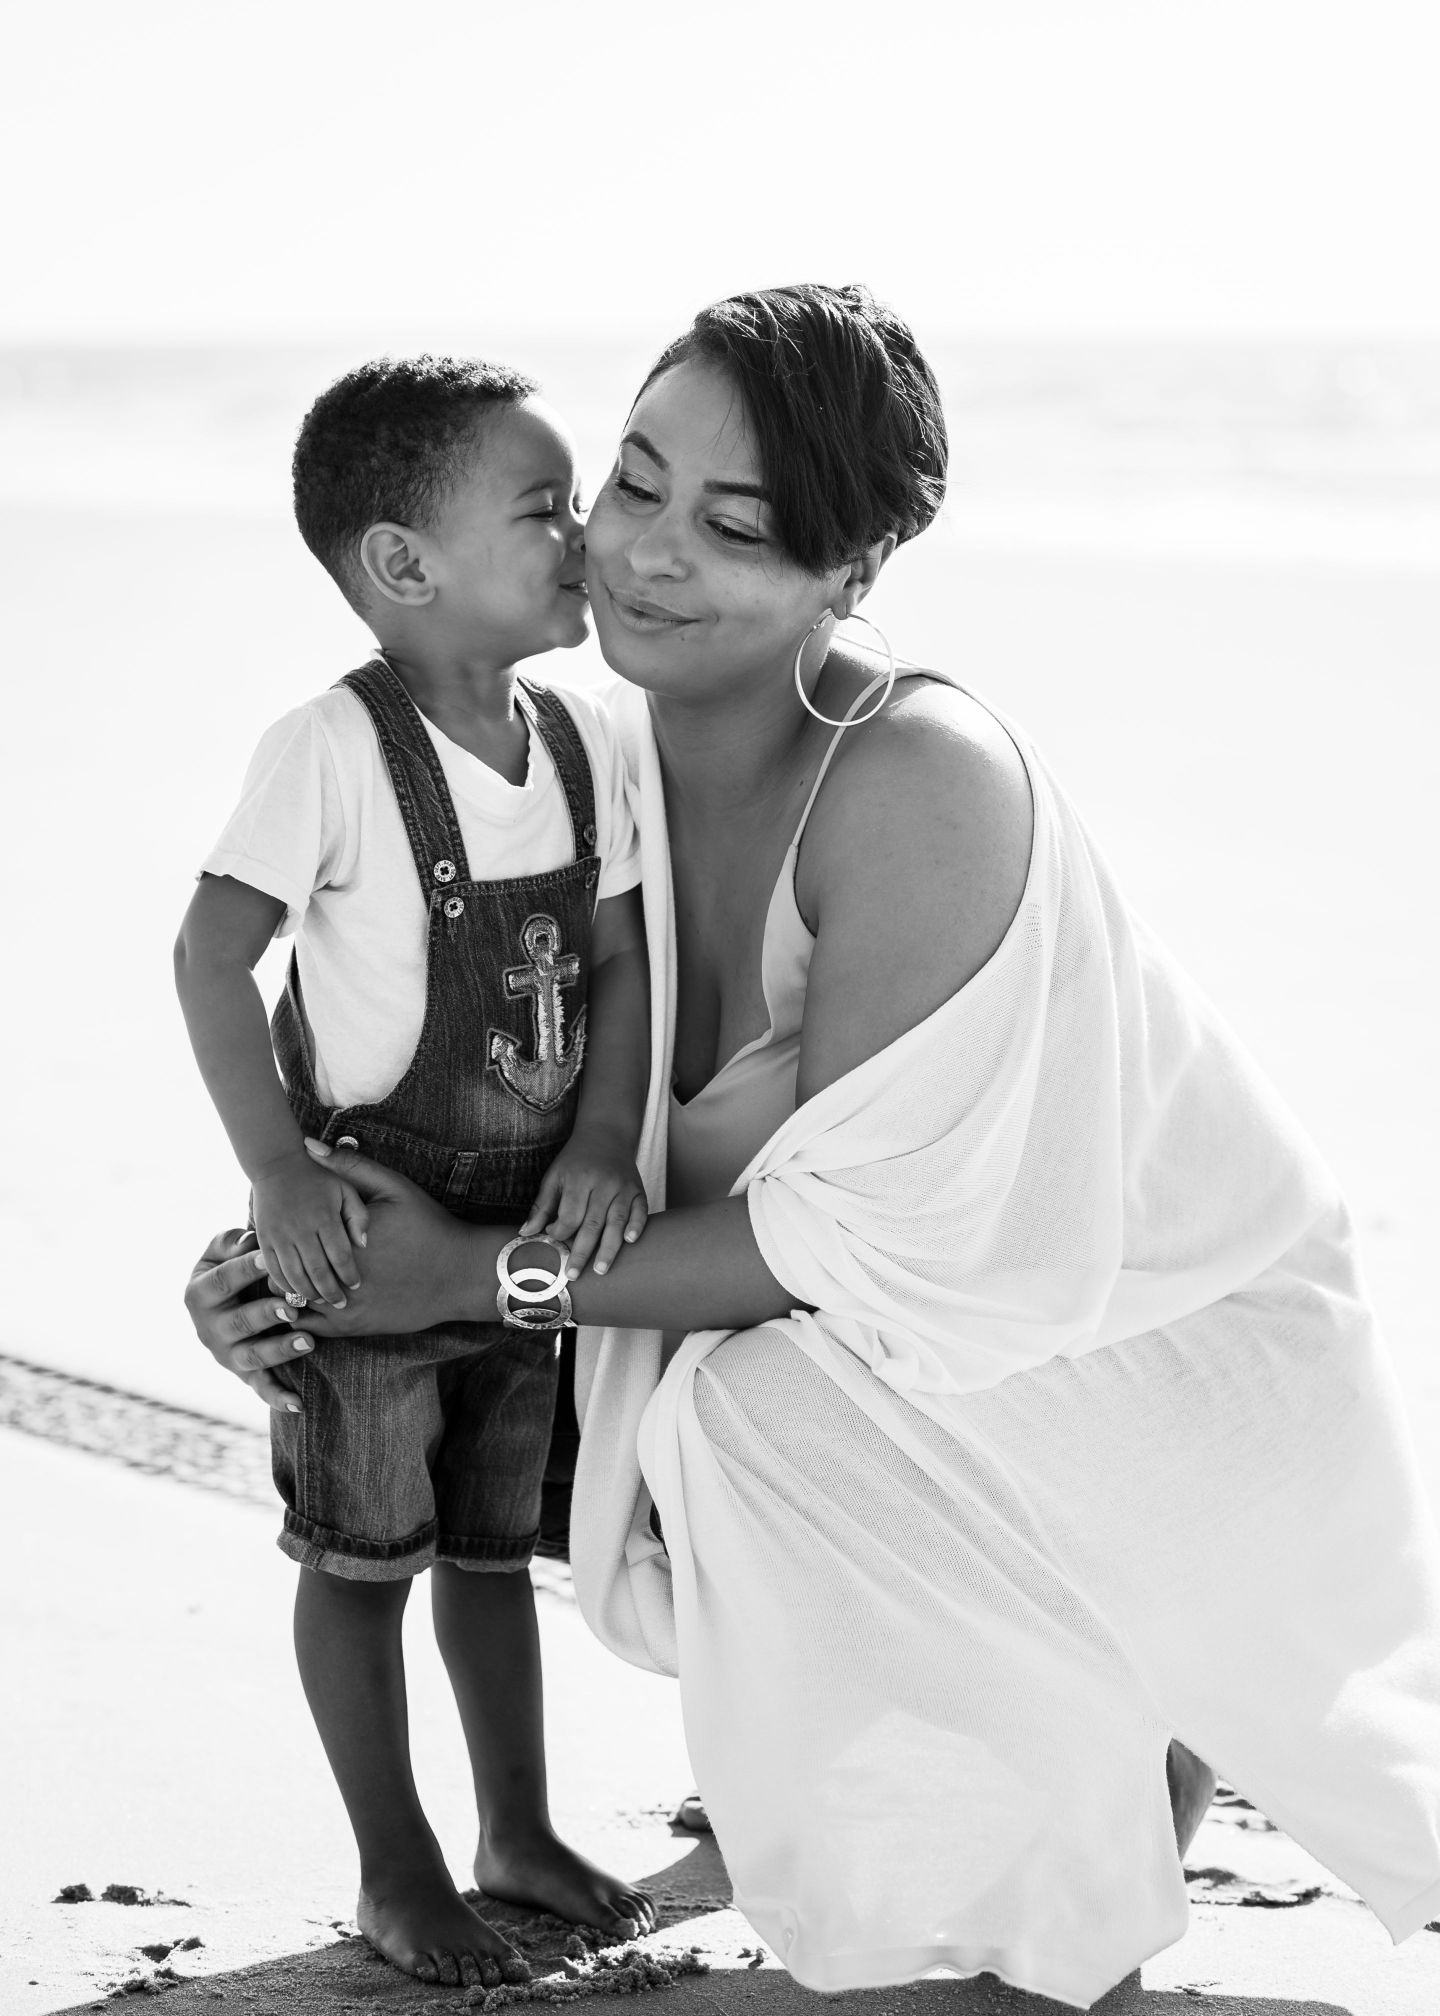 DSC_7889-1440x2016 Beach Family Photos: How To Make the Most of Your Beach Photo Shoot